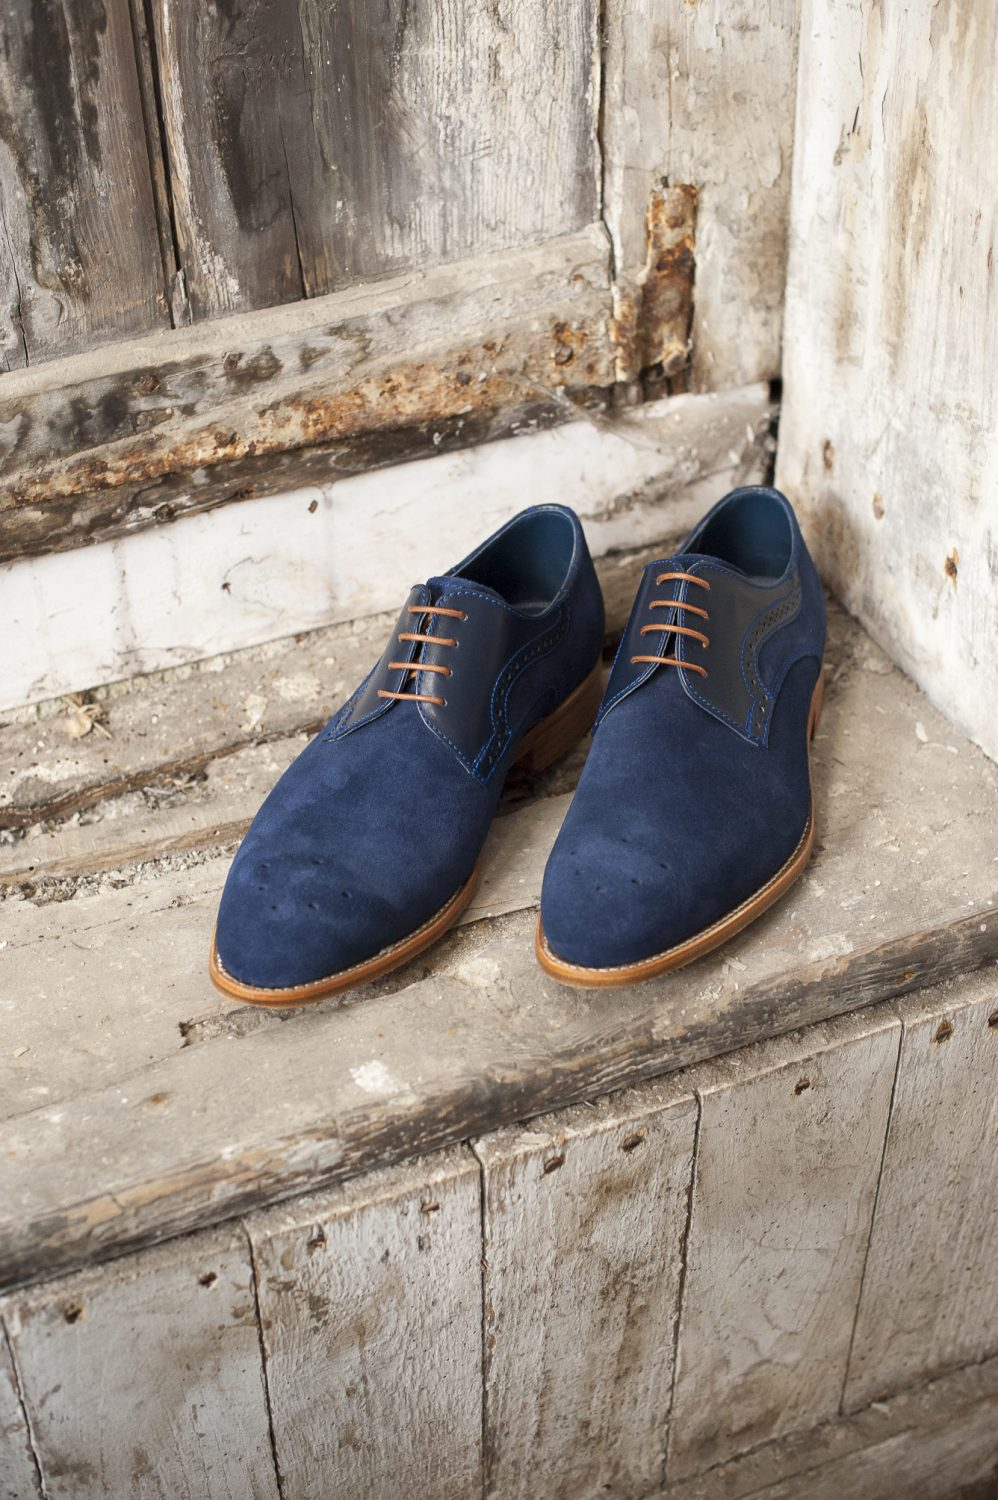 Barker Cohen shoes, £225, County Clothes, as before